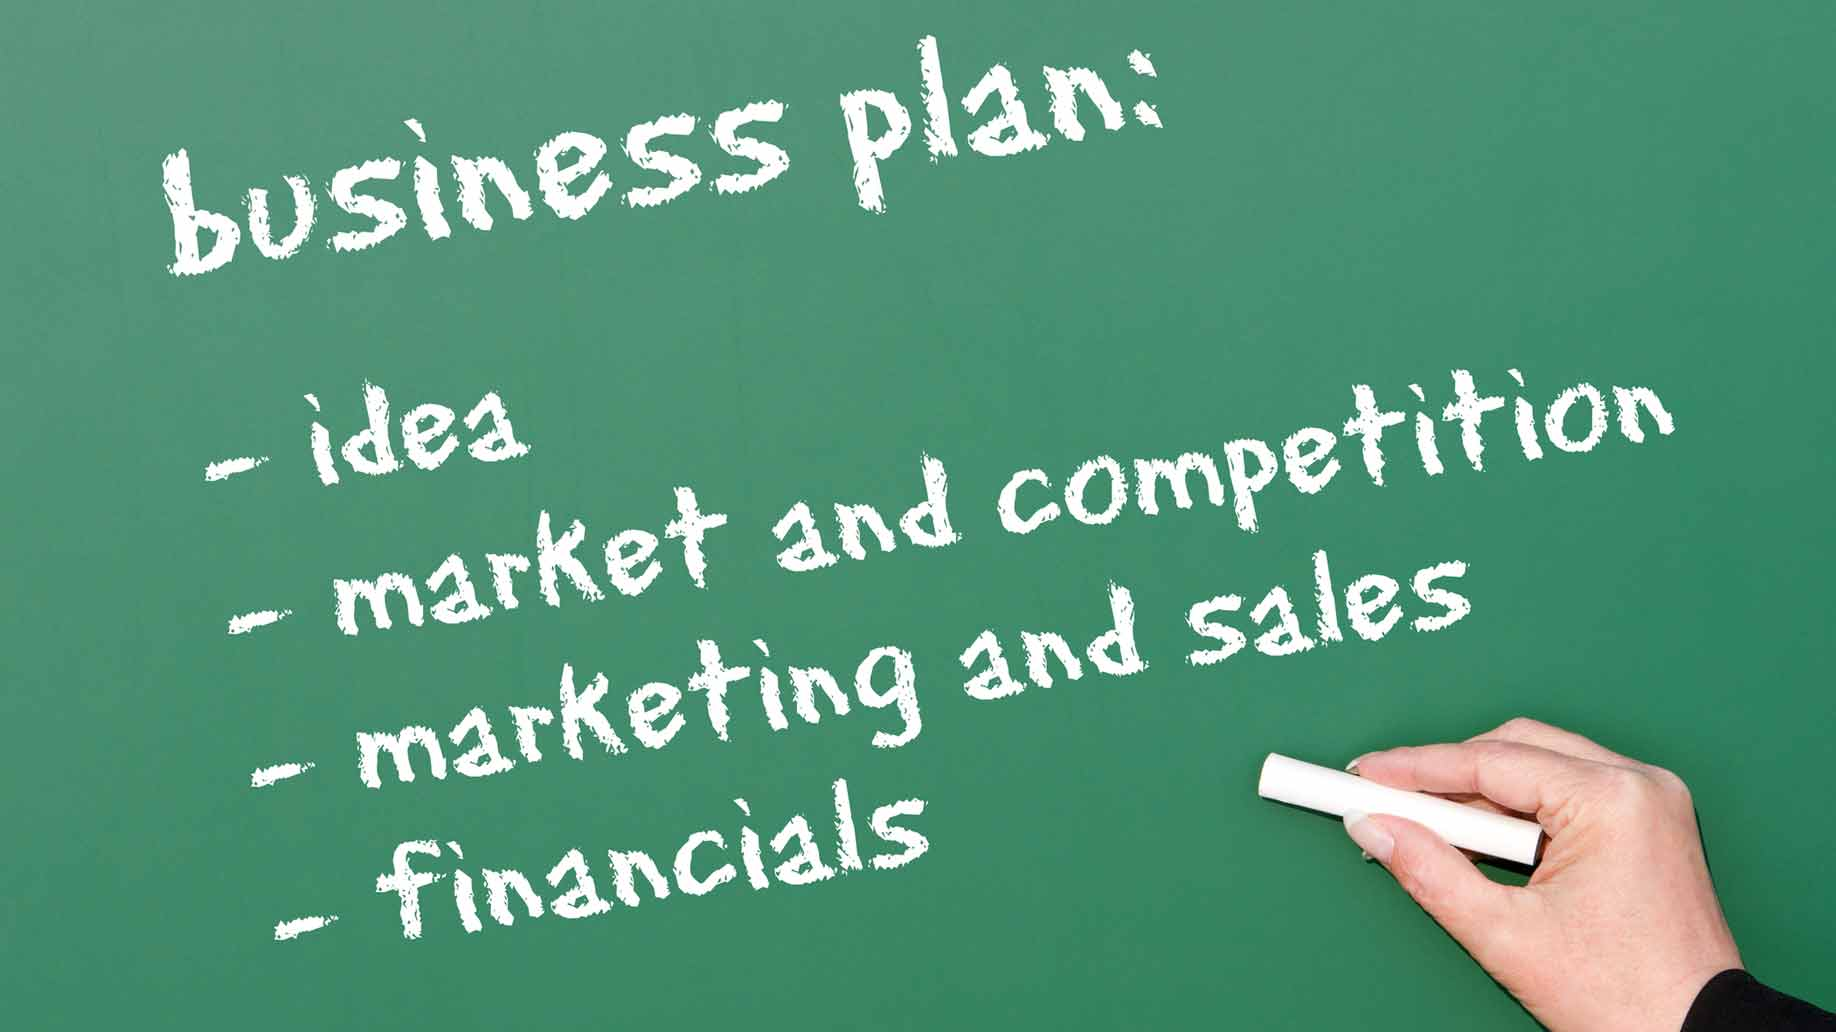 business plan chalkboard